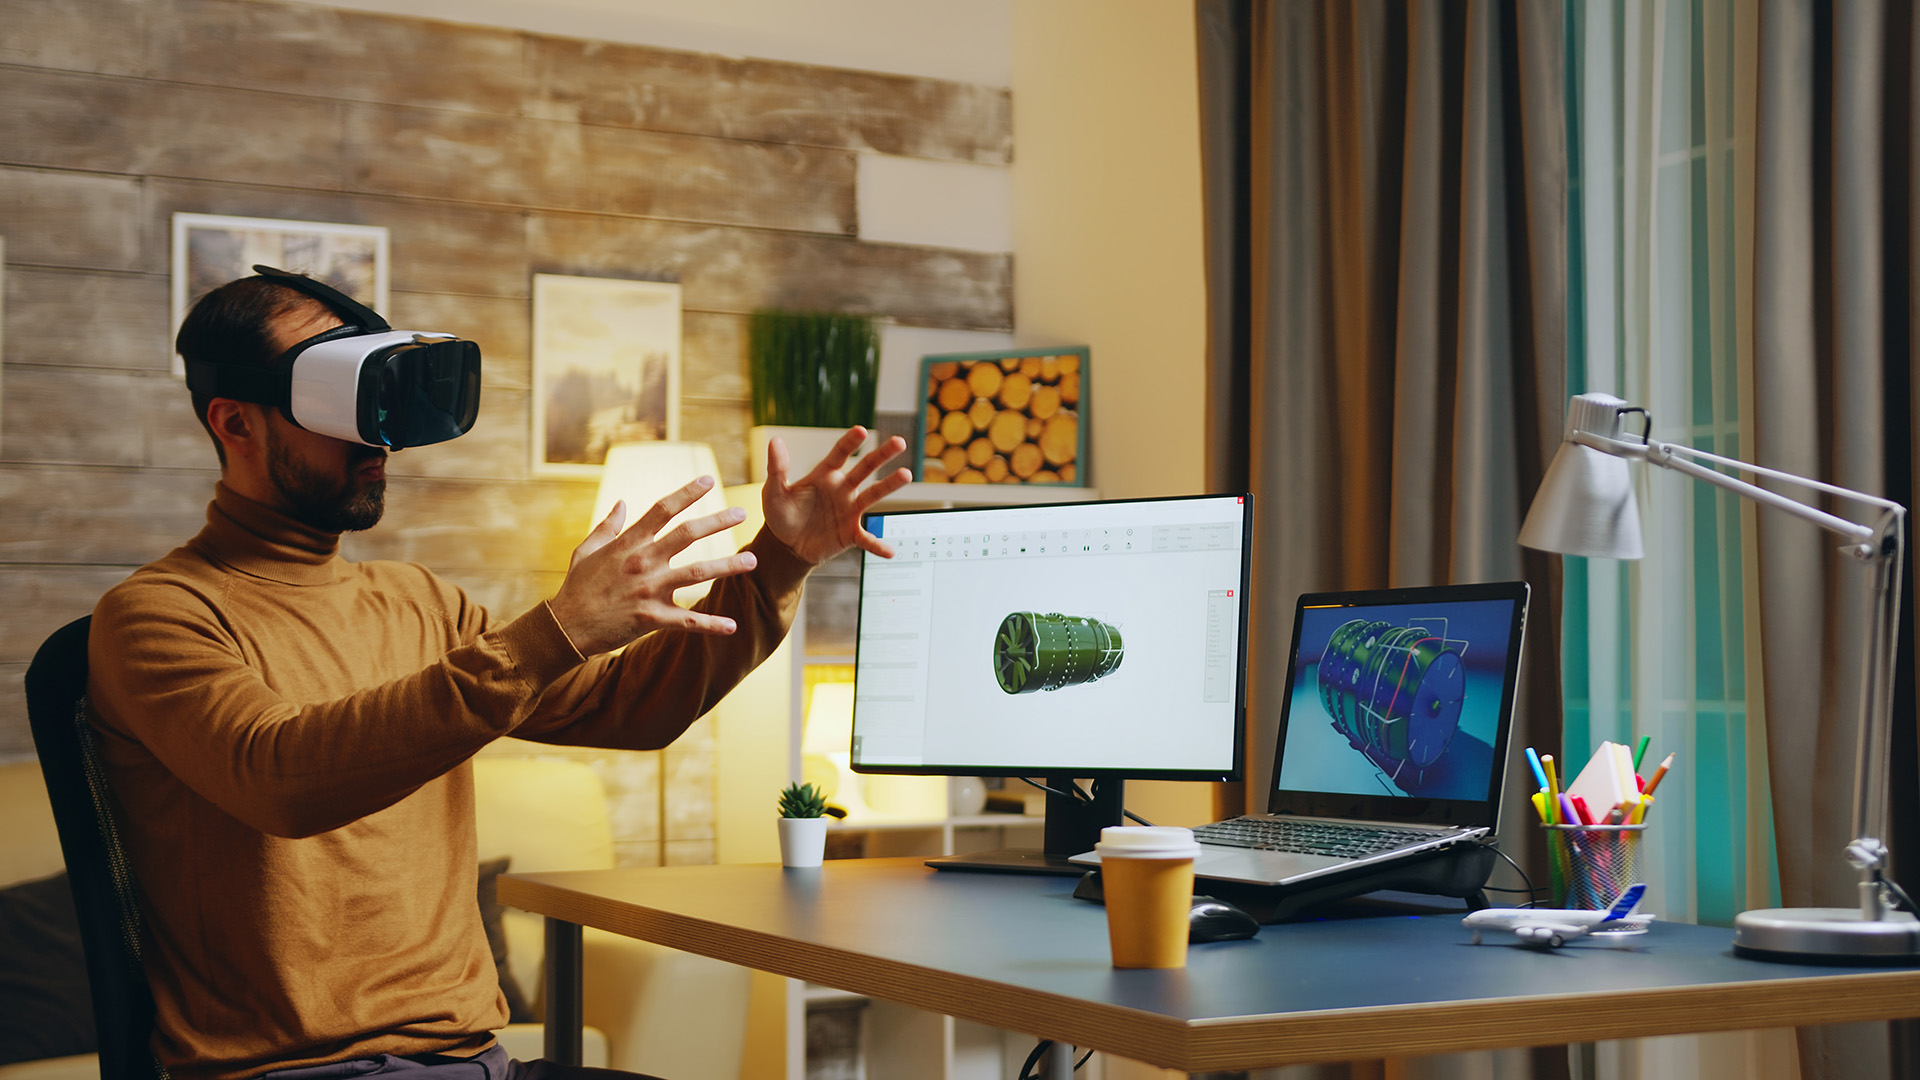 Engineer using virtual reality headset for remote collaboration at his desk at home